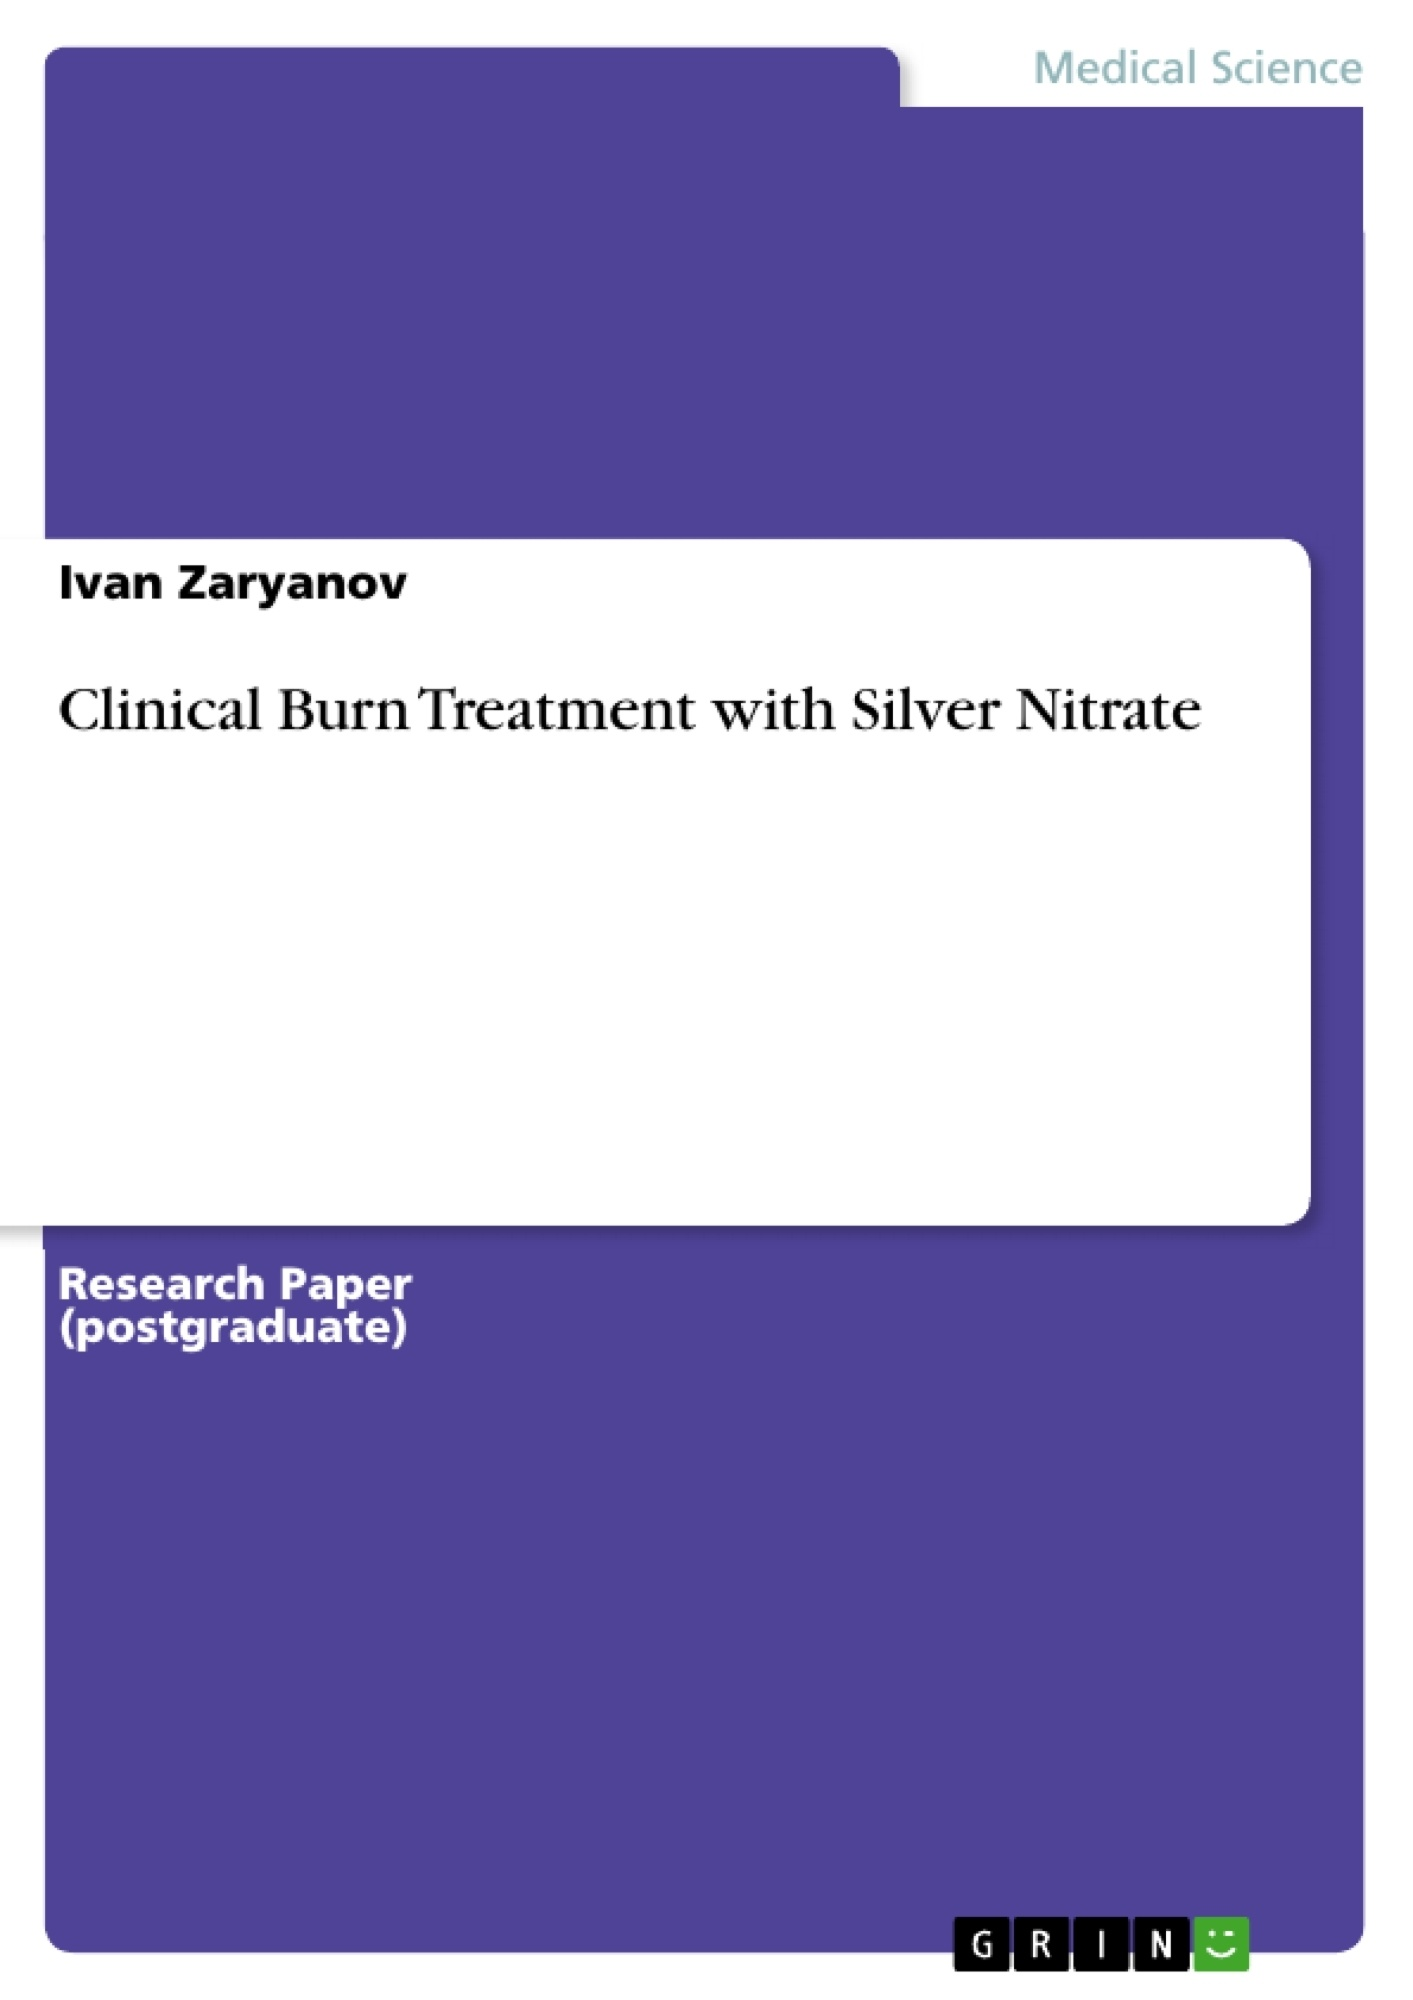 Title: Clinical Burn Treatment with Silver Nitrate